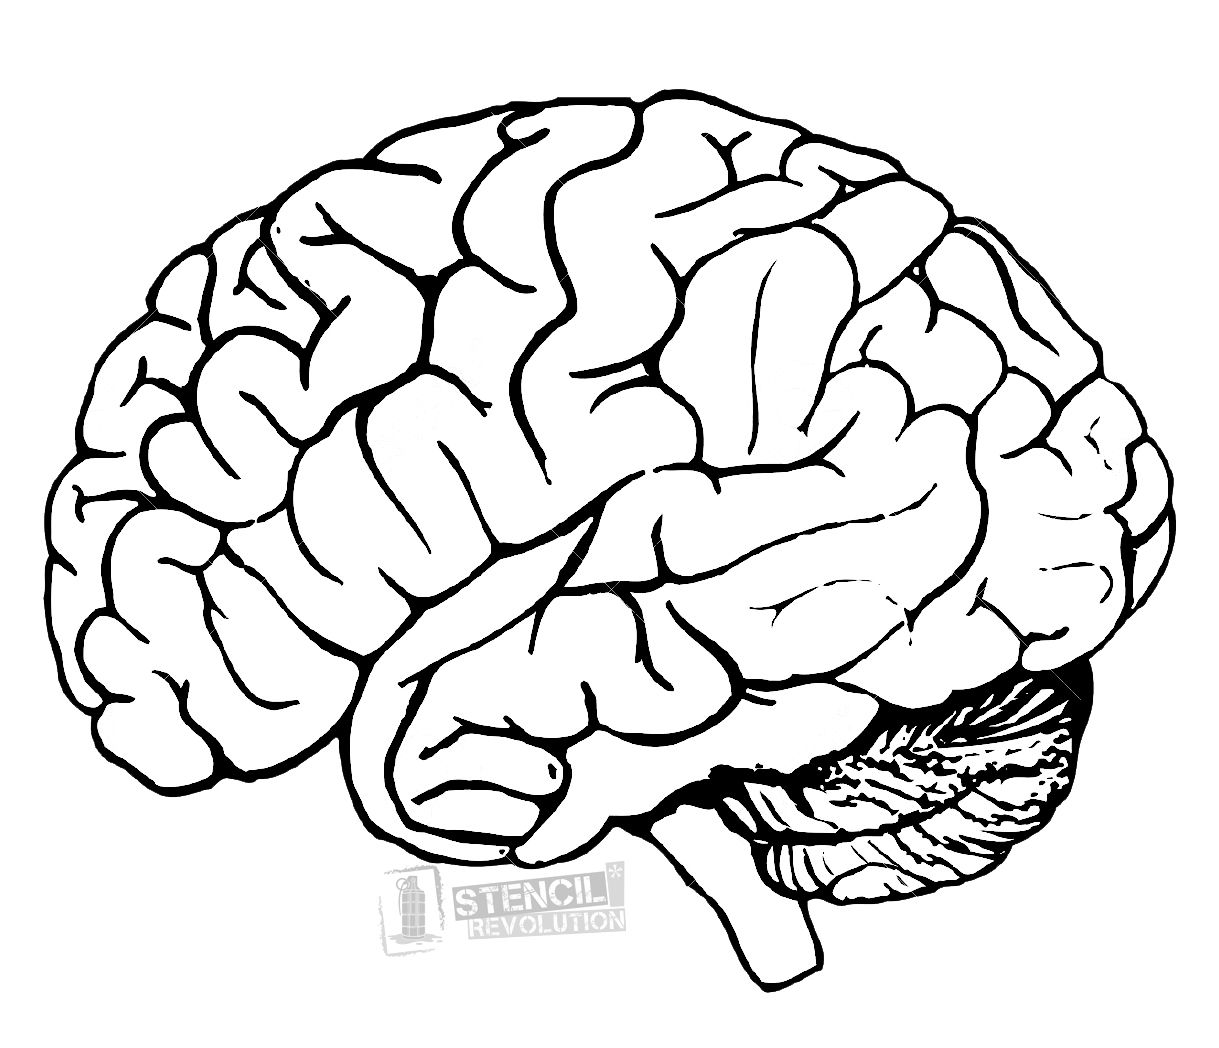 It's just a picture of Superb Printable Brain Template